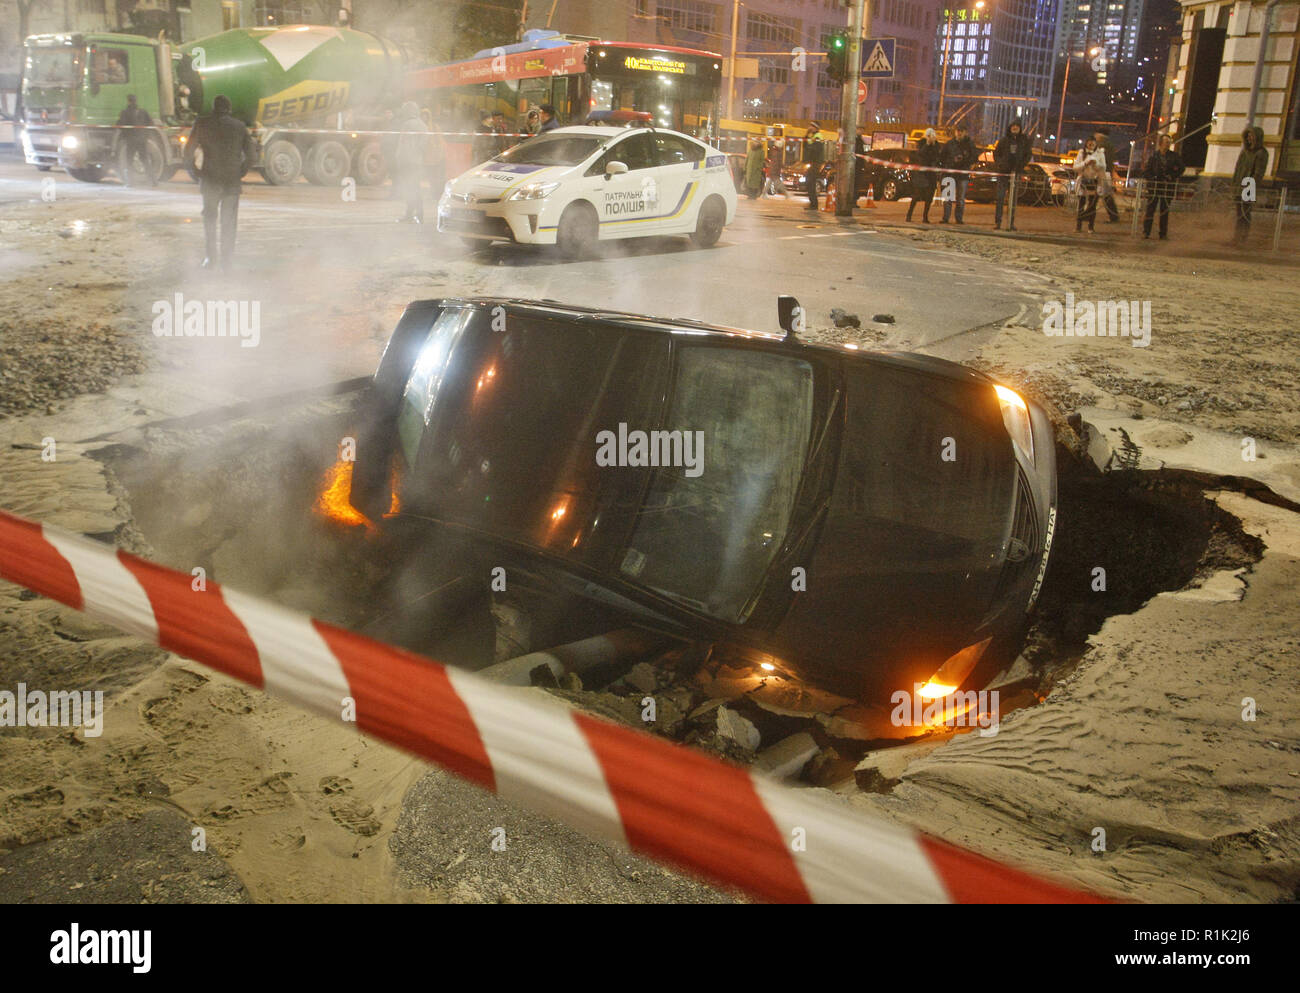 Kiev, Ukraine. 13th November 2018. A car fell in the hole in the asphalt is seen, at the side of a heat pipeline accident in center of Kiev, Ukraine, on 13 November 2018. Kyiv's downtown is paralyzed with large traffic jams, as a result of an incident occurred on the heat water pipeline, which broke and led to a transport collapse in the city. Credit: Serg Glovny/ZUMA Wire/Alamy Live News - Stock Image